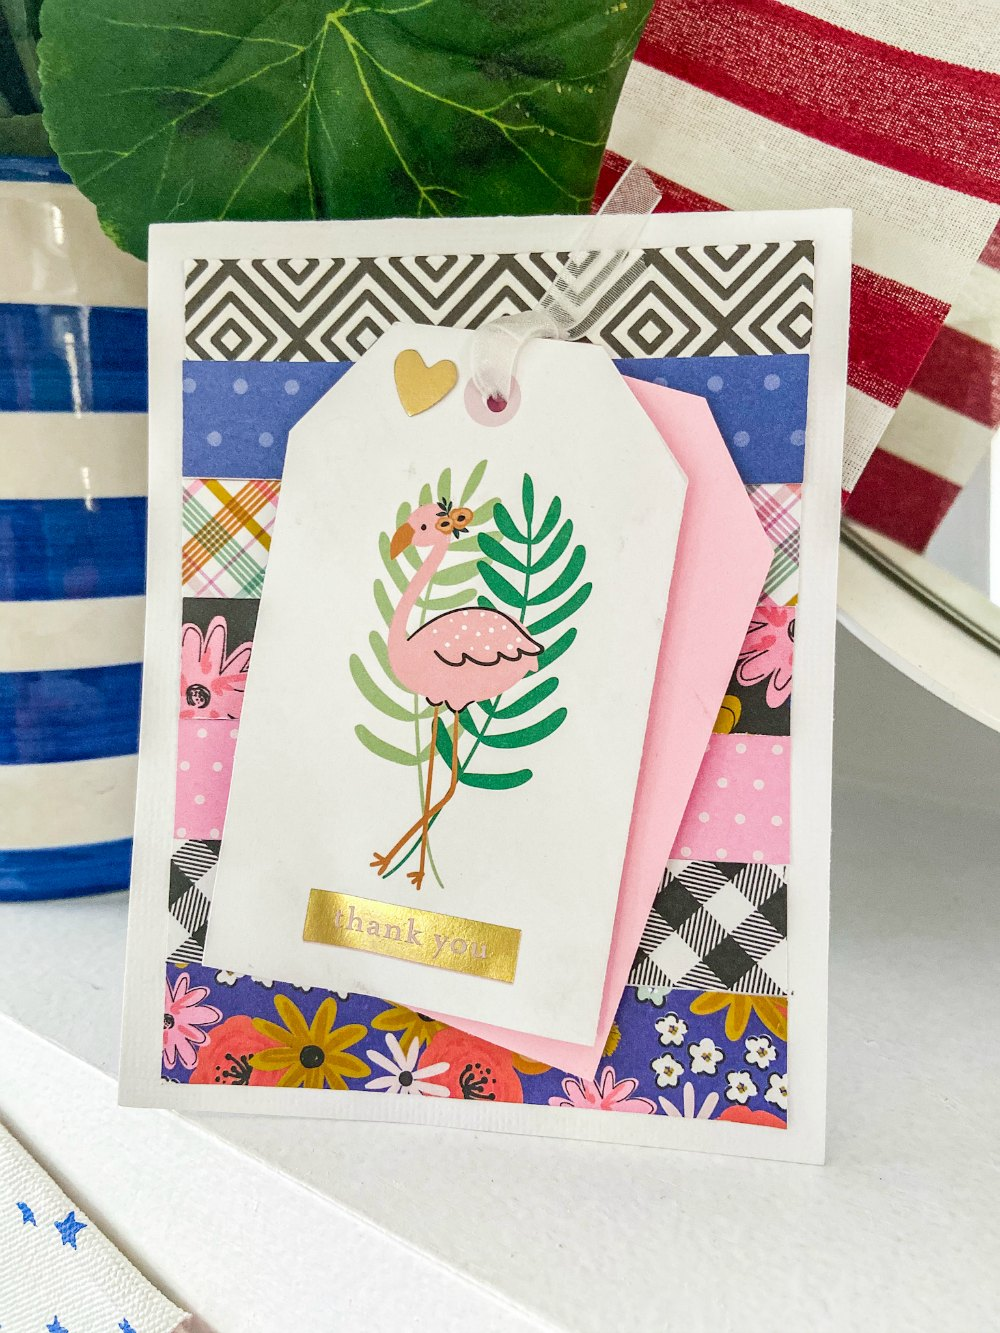 Flamingo thank you card will full instructions.